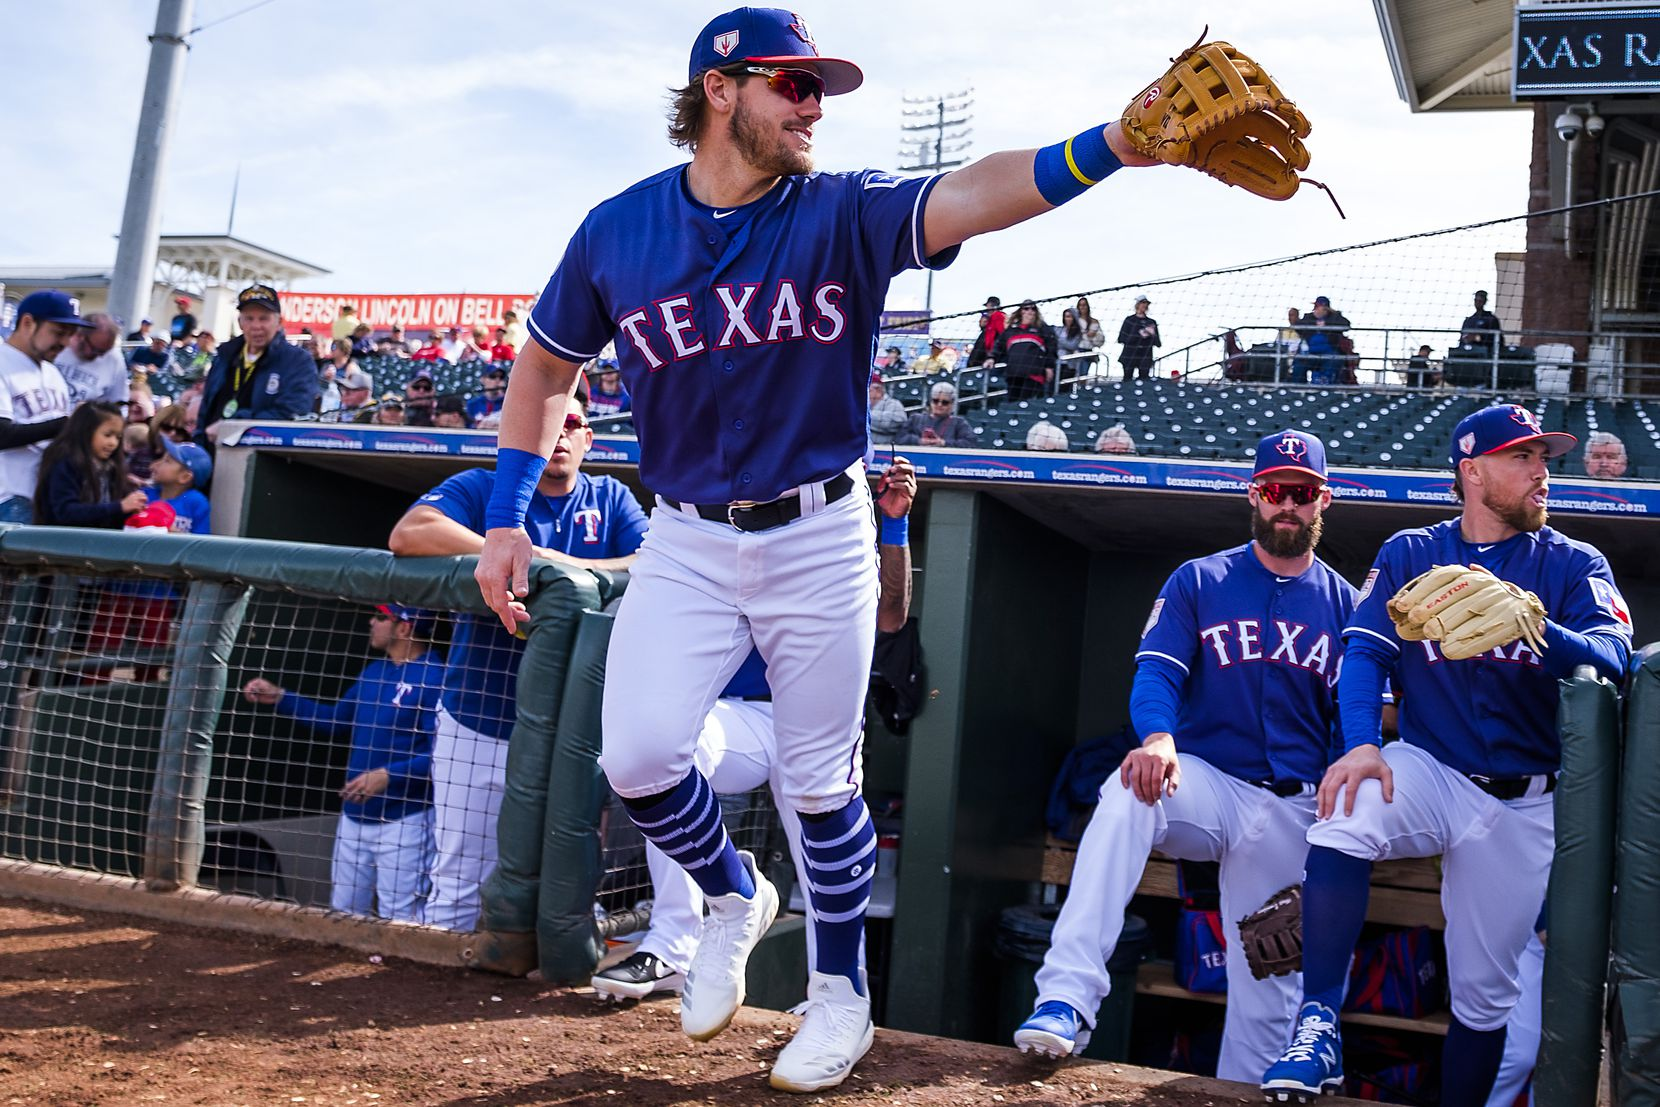 Texas Rangers infielder Patrick Wisdom takes the field for a spring training game against the Milwaukee Brewers on Feb. 24 at Surprise Stadium in Surprise, Ariz.